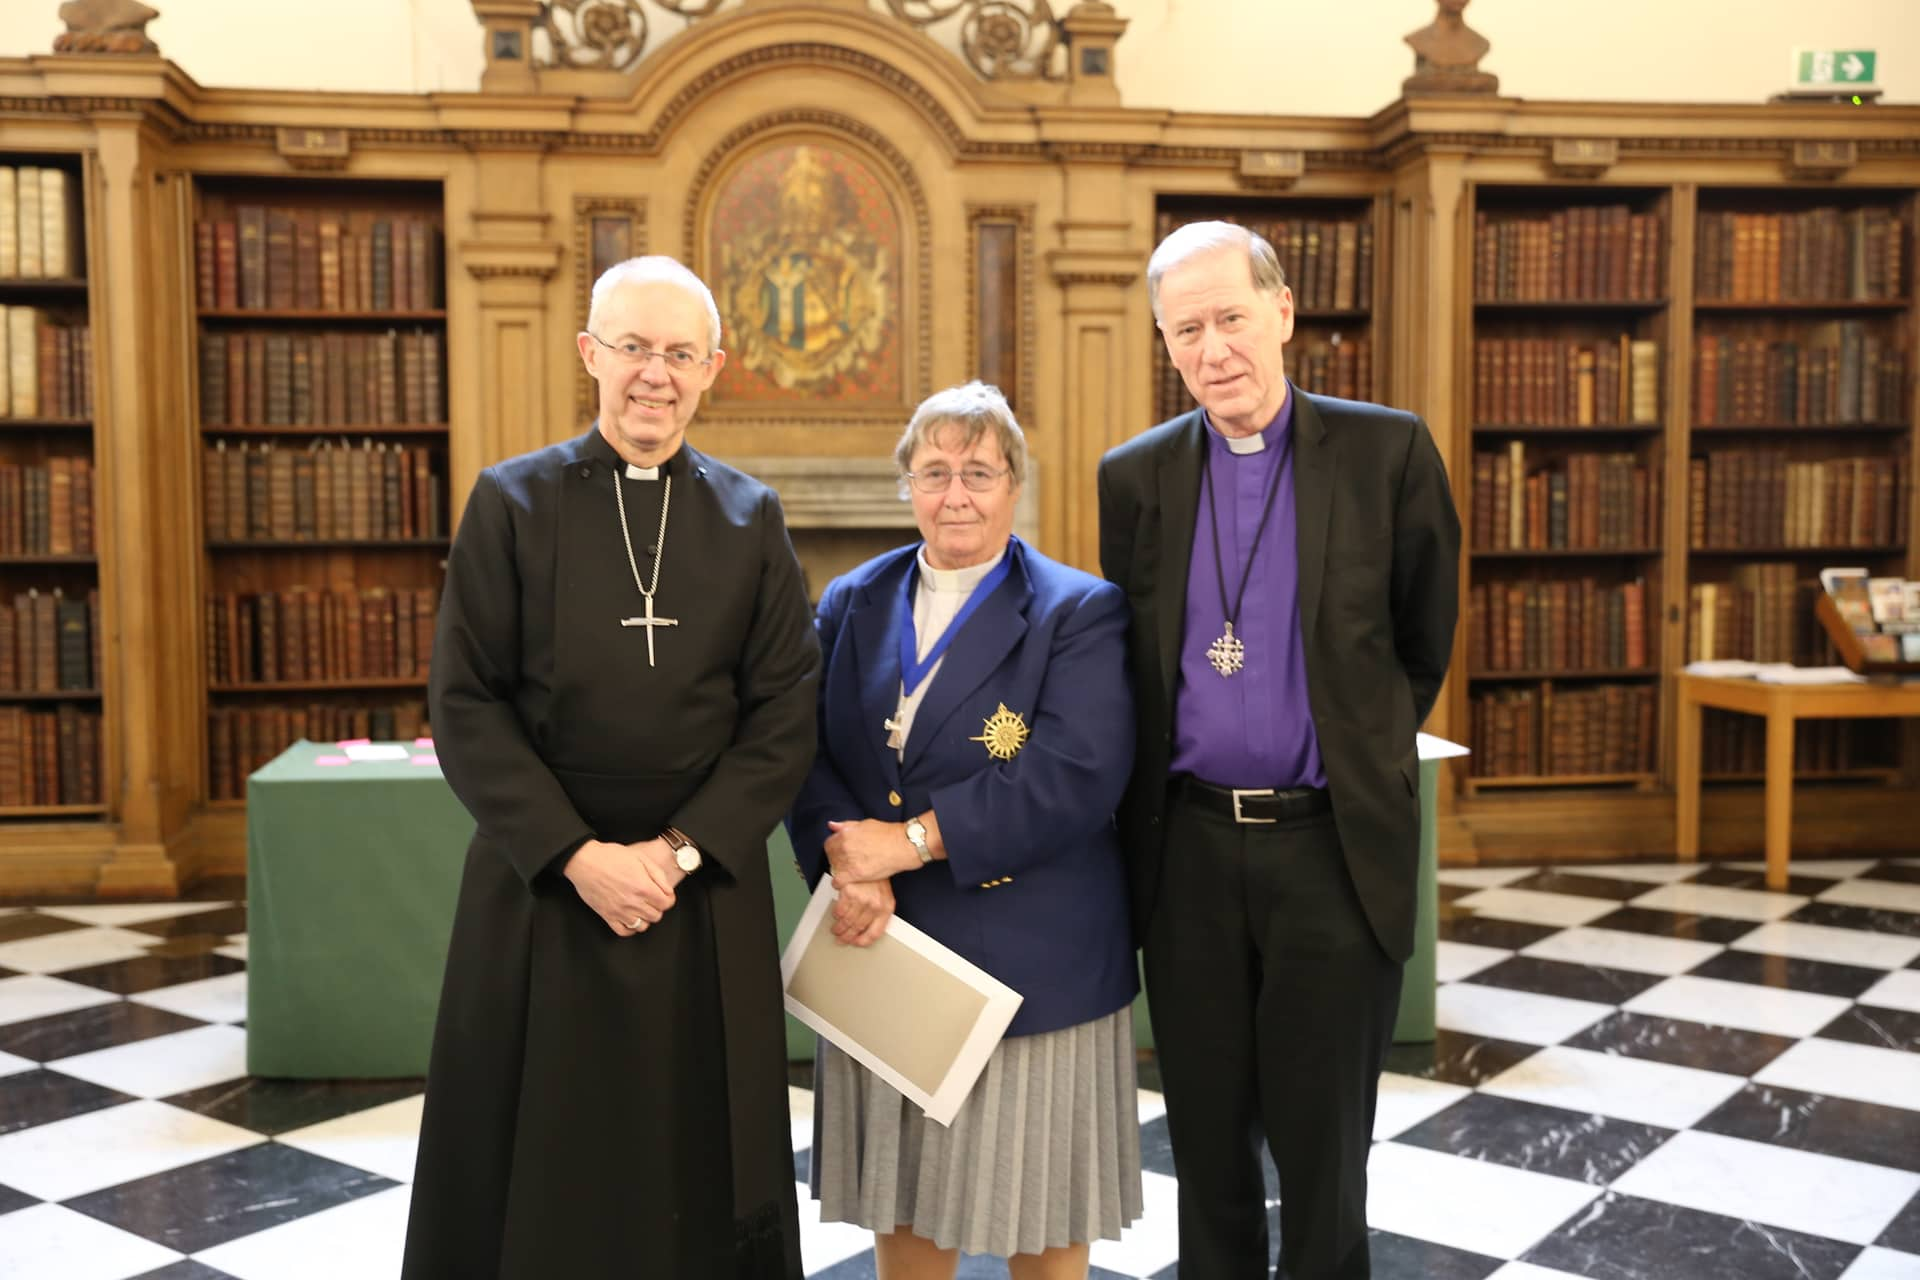 The Reverend Canon Alyson Barnett-Cowan, past president of the Canadian Council of Churches, was awarded the Lambeth Cross for Ecumenism recently by the worldwide Anglican Communion for her longstanding commitment to promoting dialogue and discussion among Canada's Christian communities. She received her award from the Archbishop of Canterbury, Archbishop Justin Welby, and Archbishop Fred Hiltz, Primate of the Anglican Church in Canada